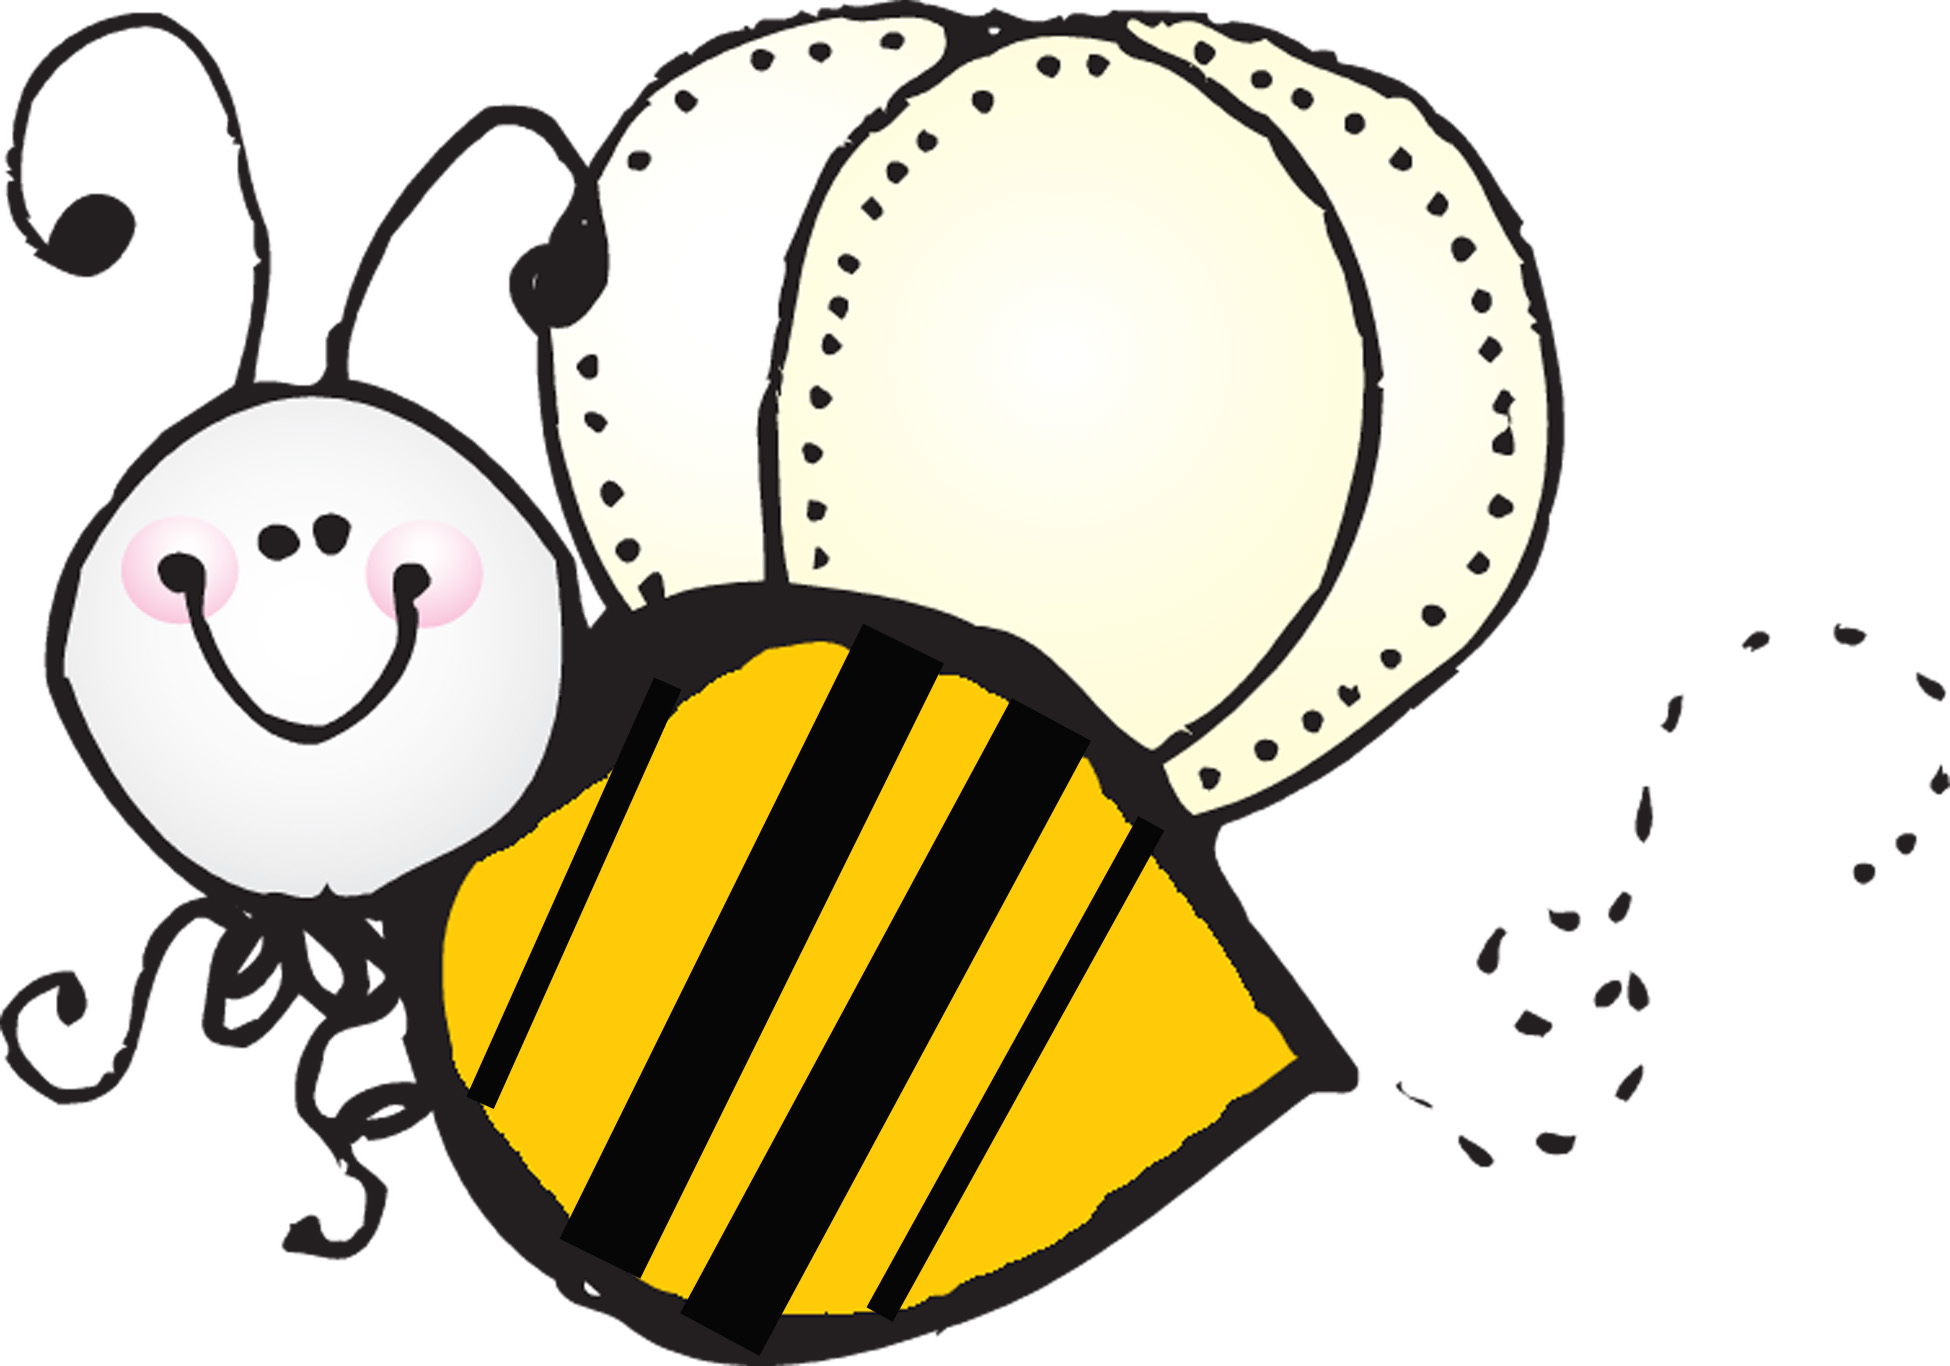 Bumble bee vector bee clipart .